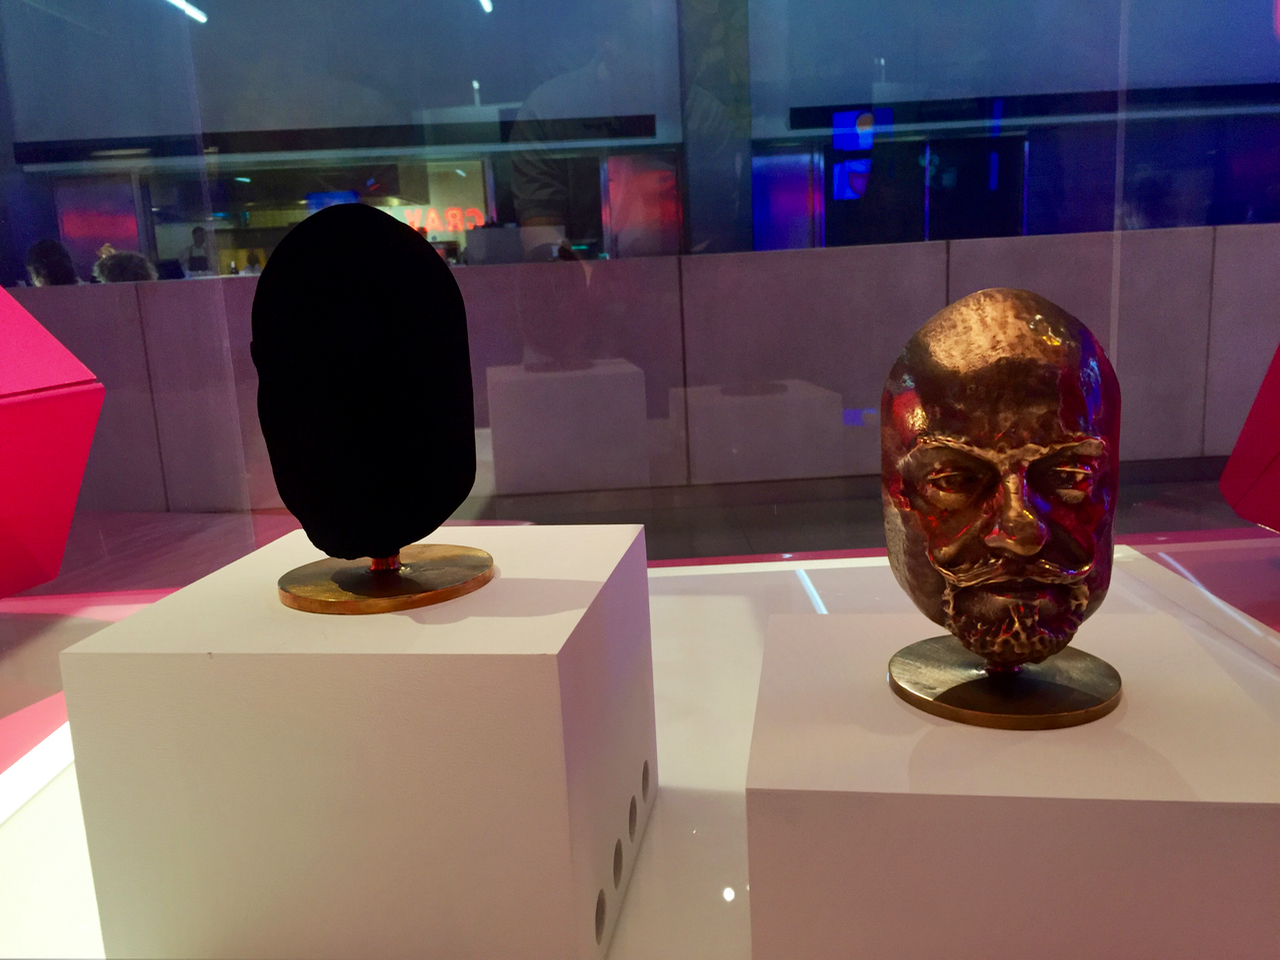 Two identical metal sculptures, one coated with Vantablack, the world's darkest material